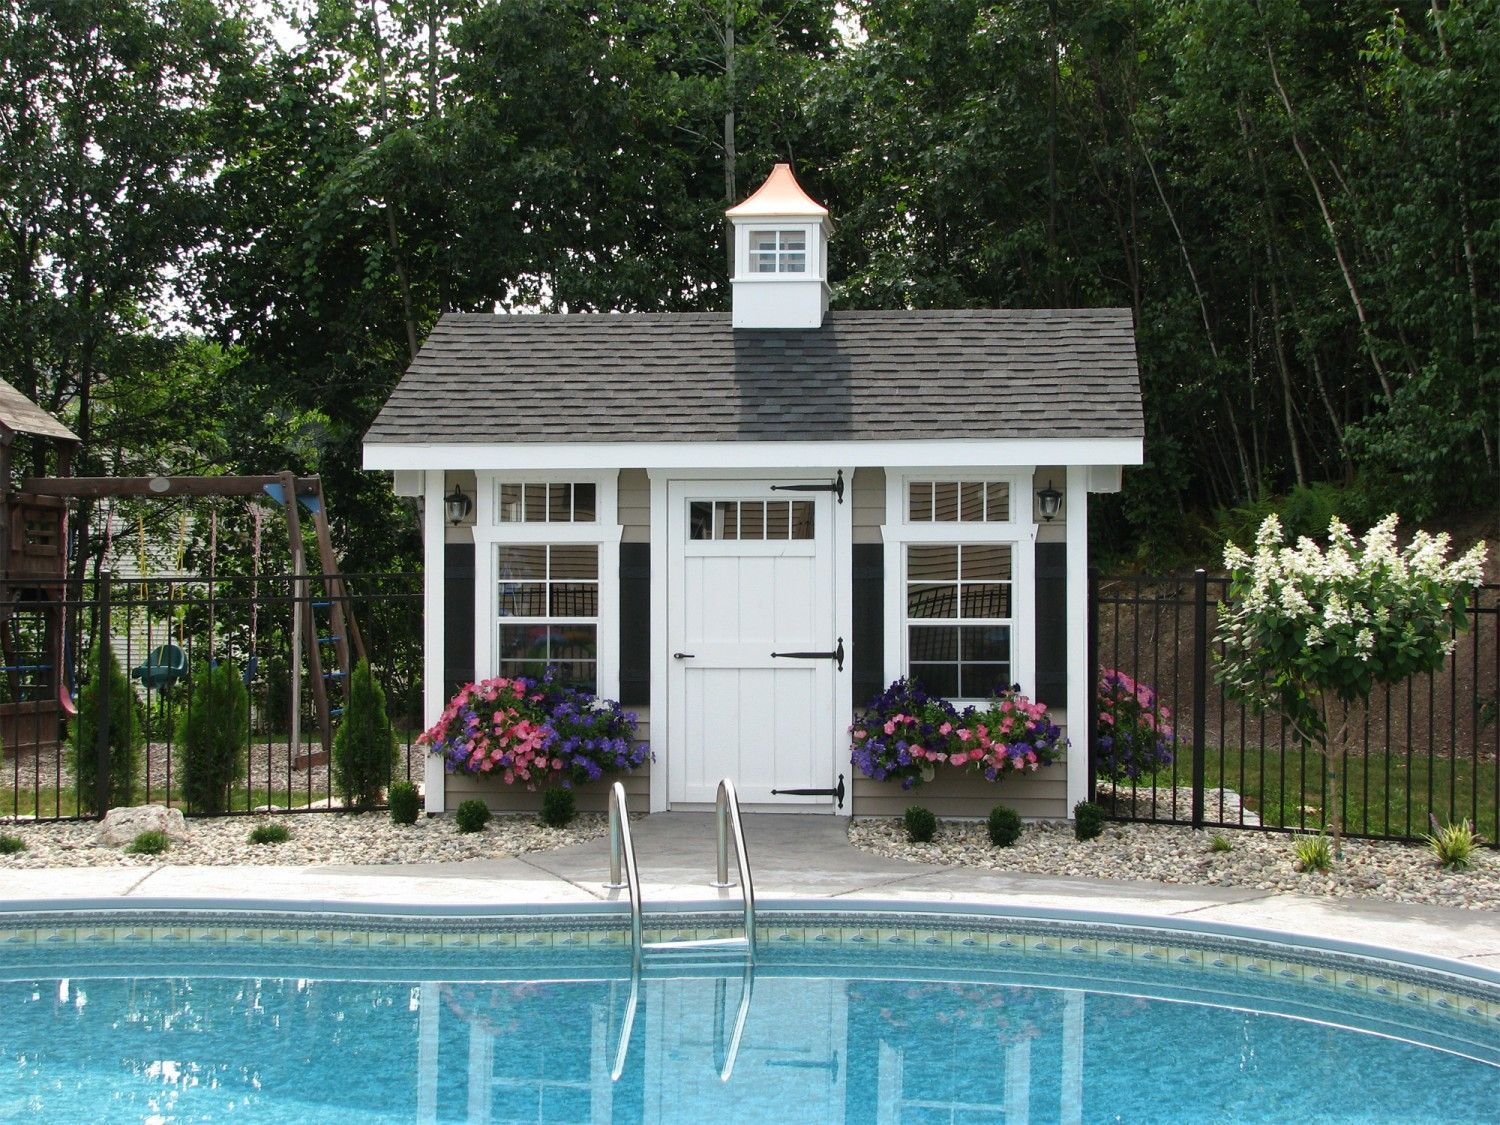 Best 25+ Pool shed ideas on Pinterest | Pool house shed, Shed ...